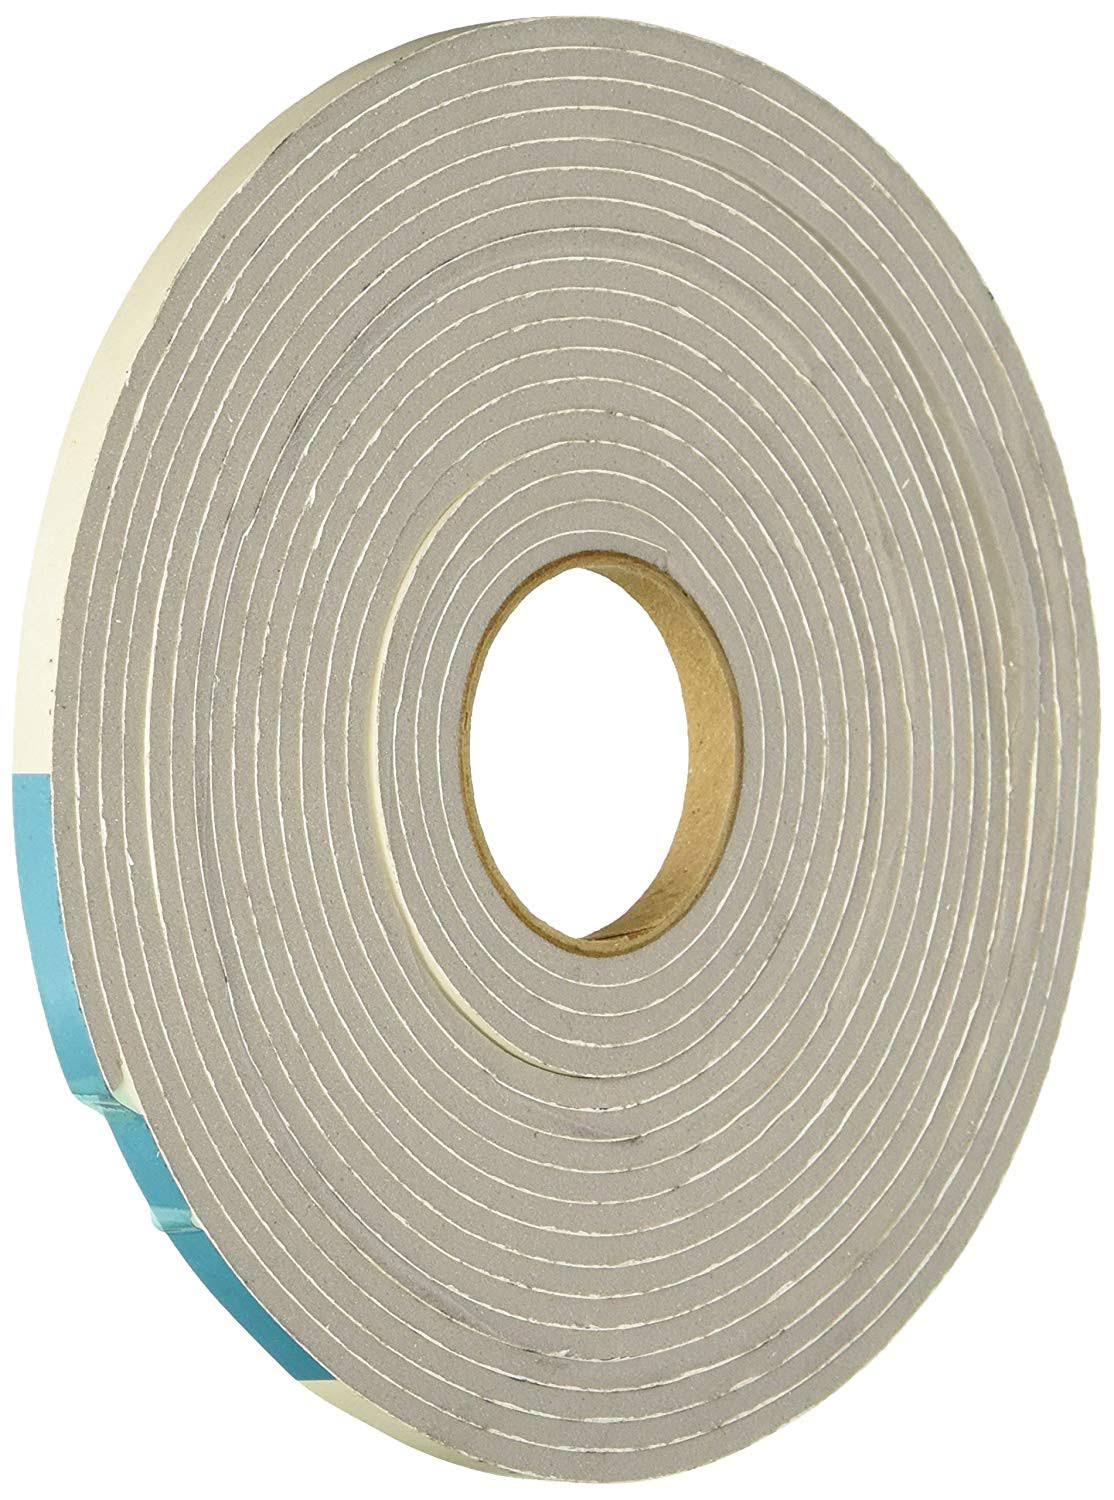 "MD High Density Foam Tape with Adhesive Closed Cell - Gray, 1/4"" X 1/8"" X 17'"